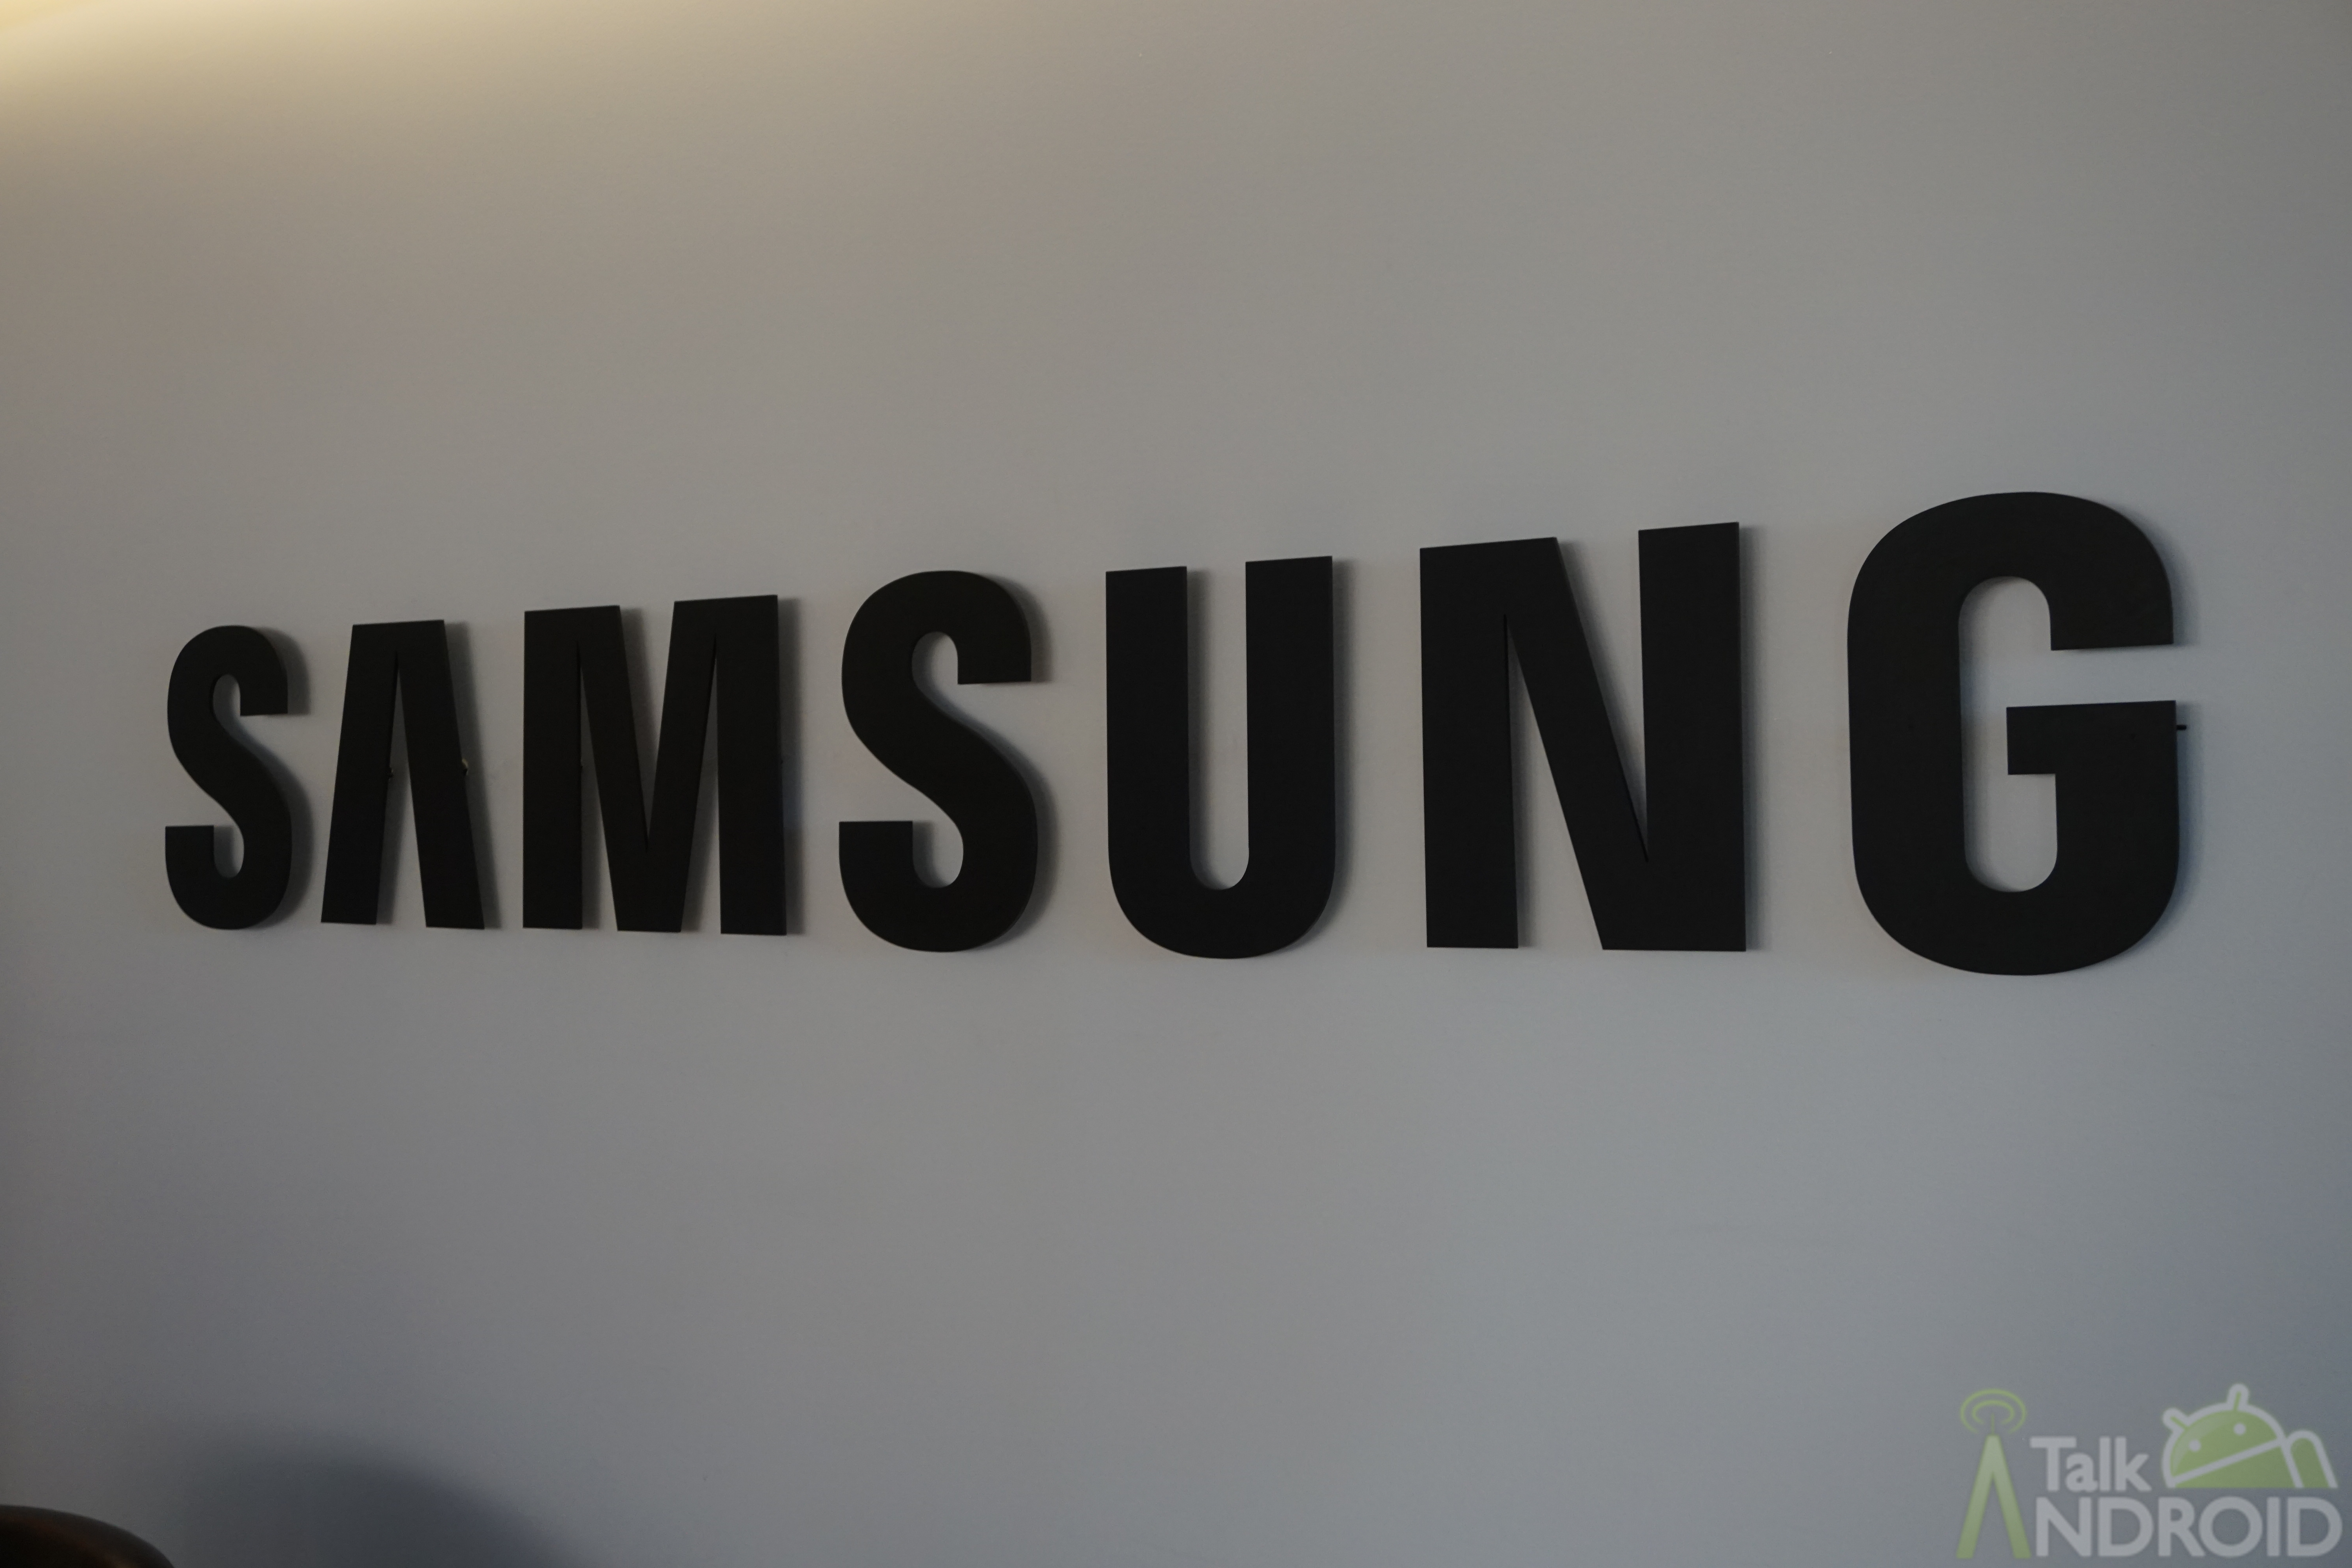 samsung_837_logo_office_TA